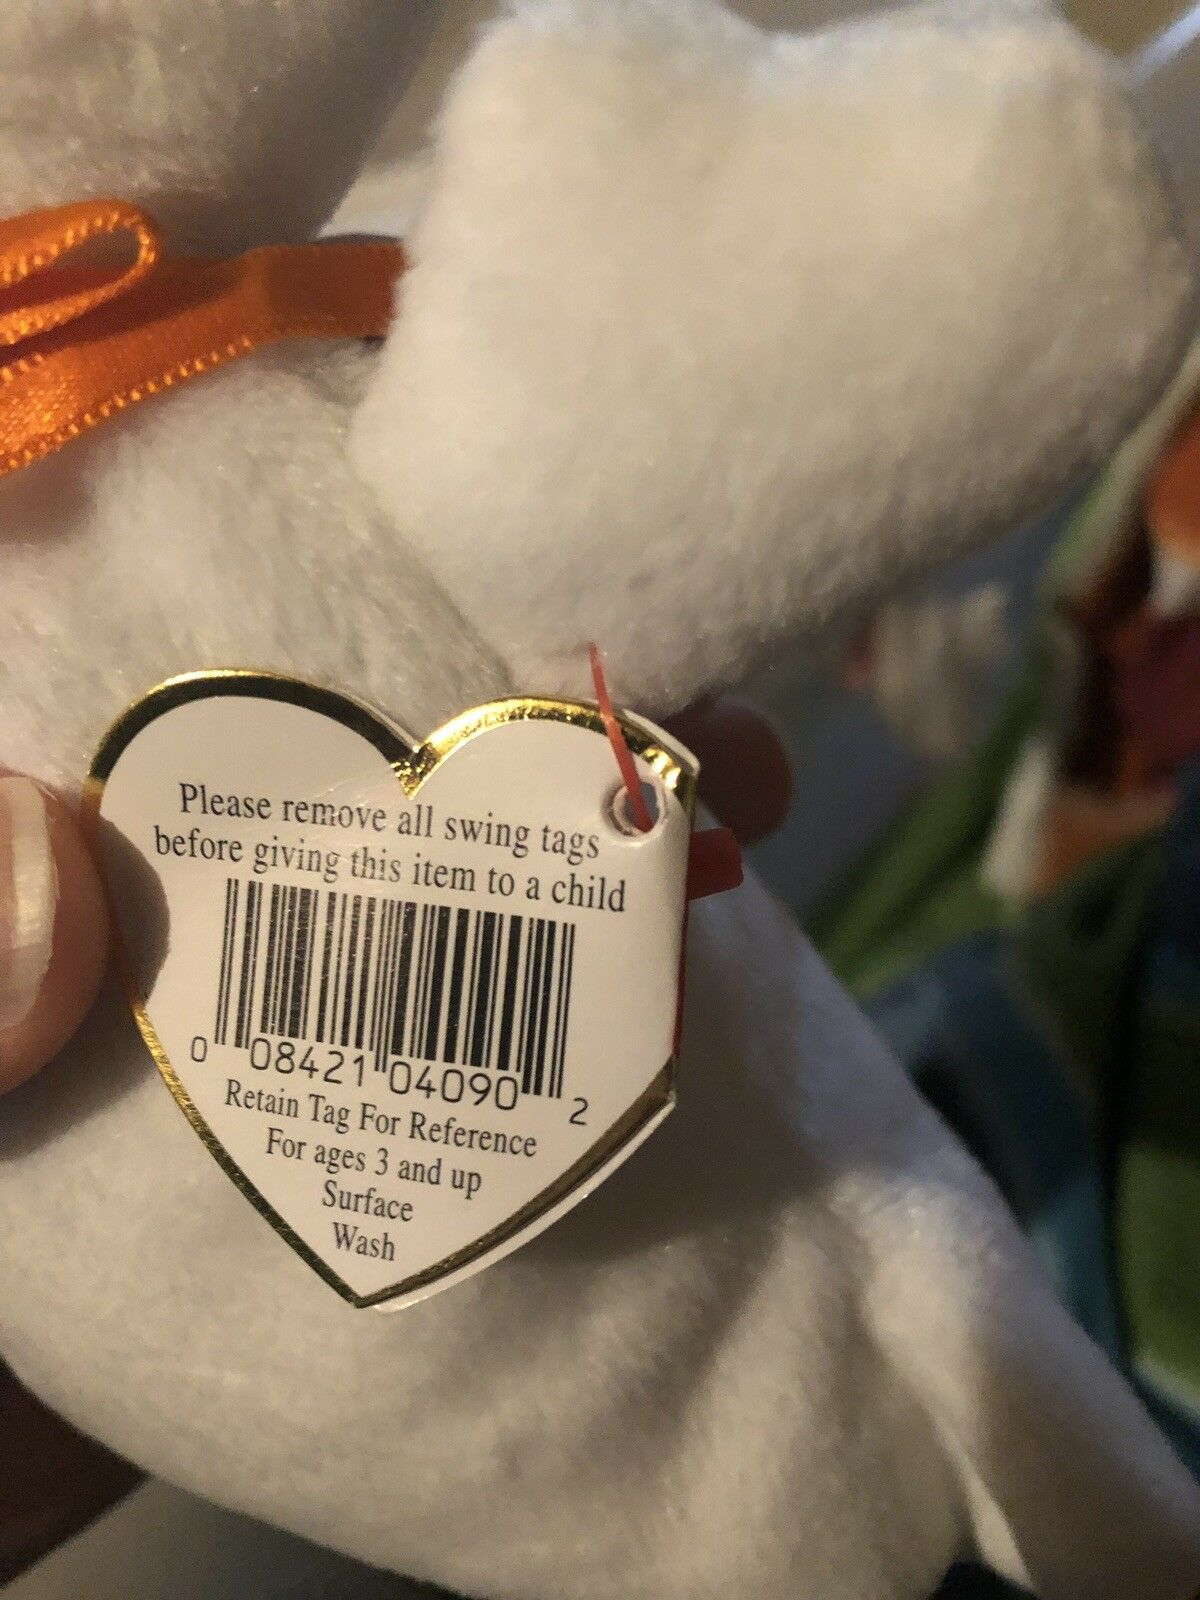 Ultra RARE MINT MINT MINT Spooky  Ty Beanie Baby With Multiple Errors On Tag  008421040902 3ca73b